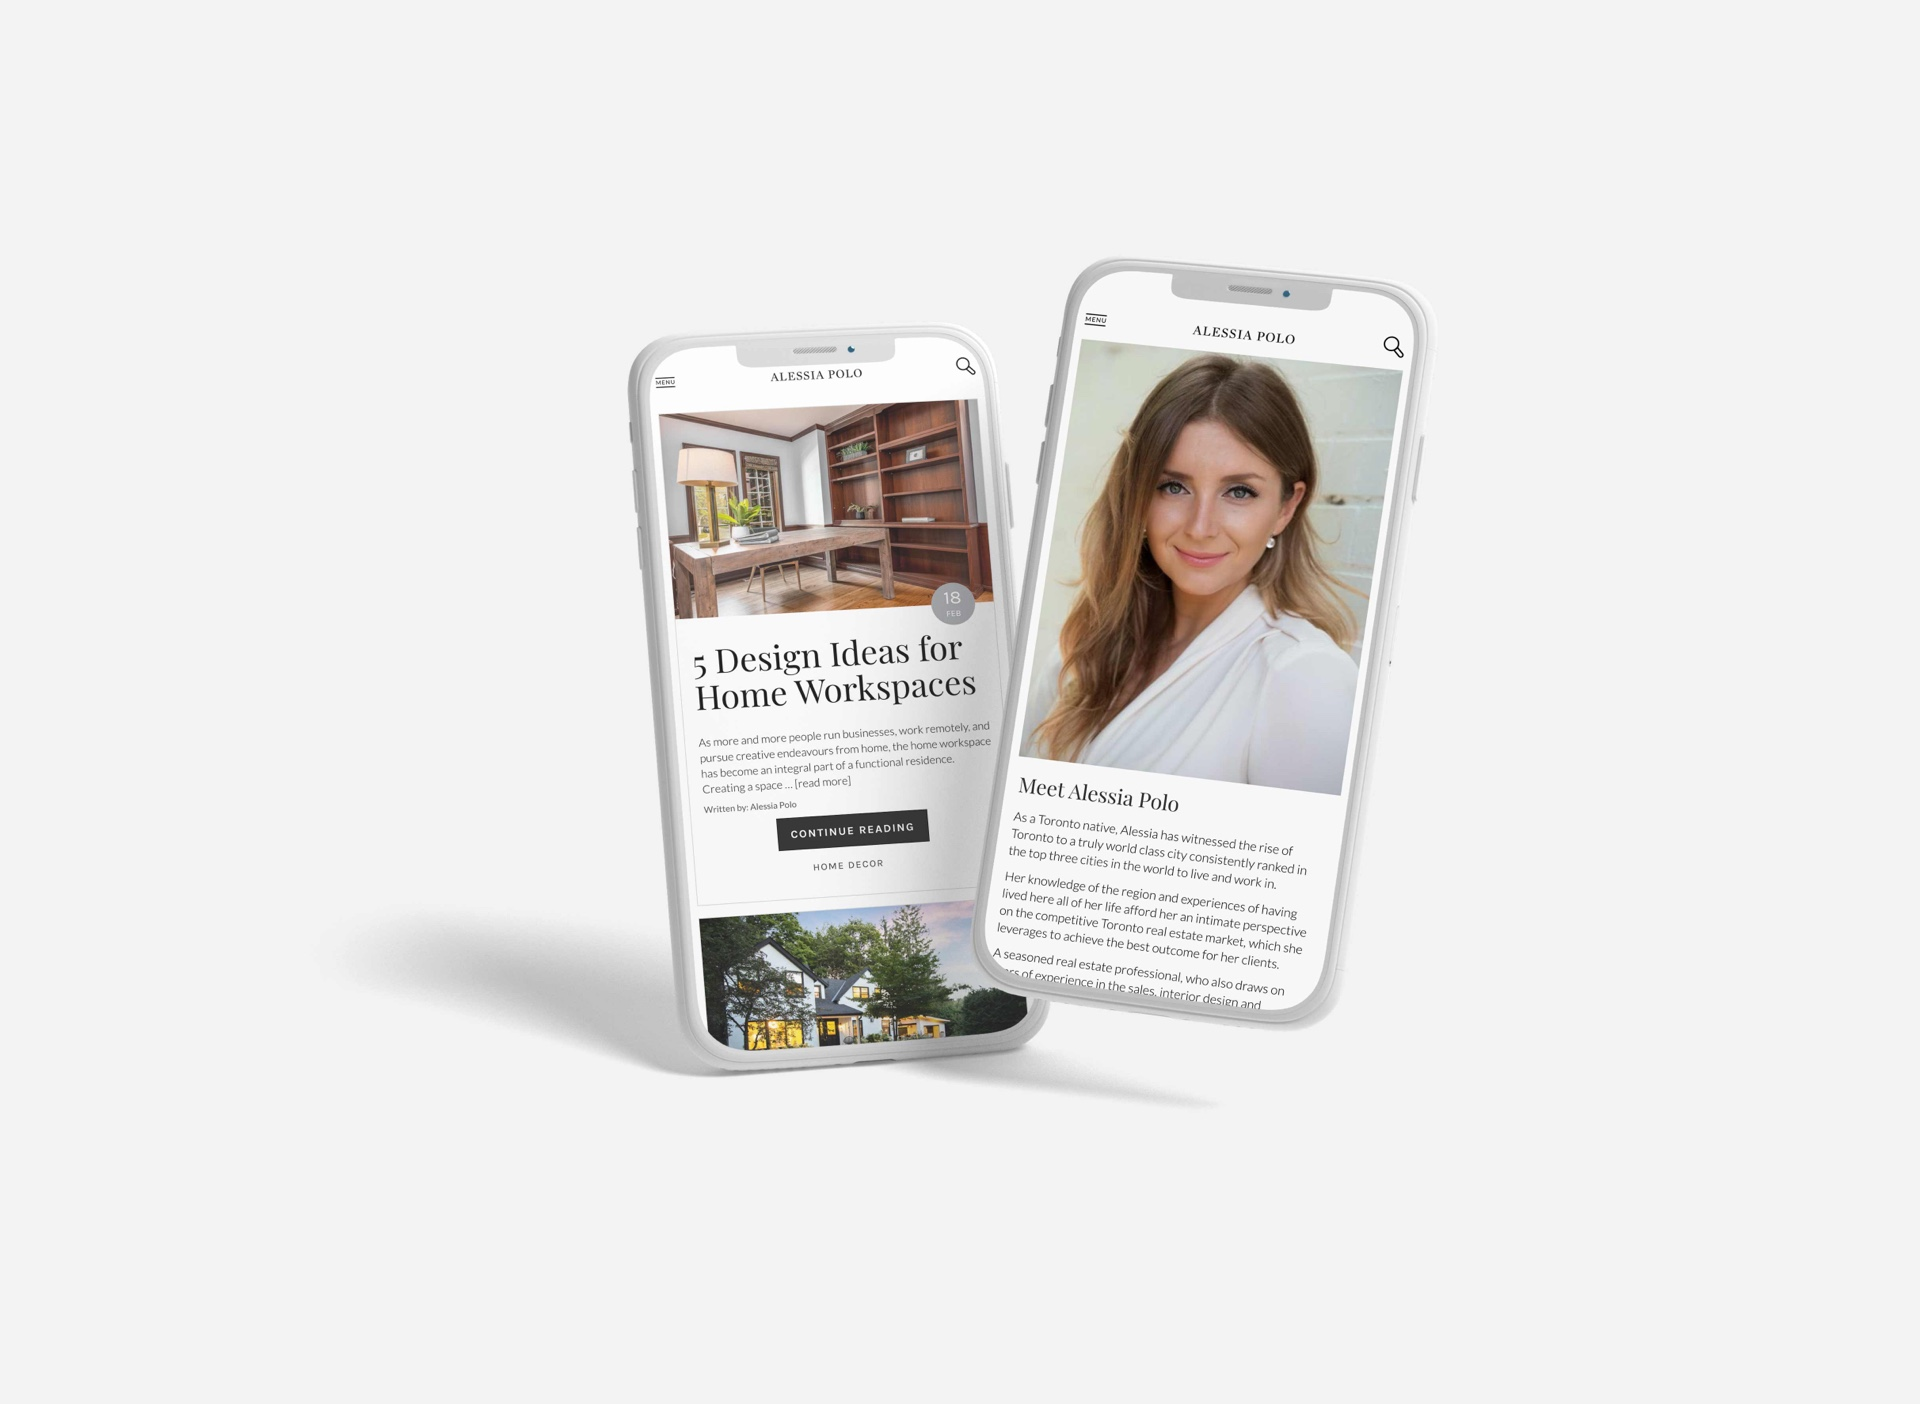 Mobile Showcase for Toronto Real Estate Agent